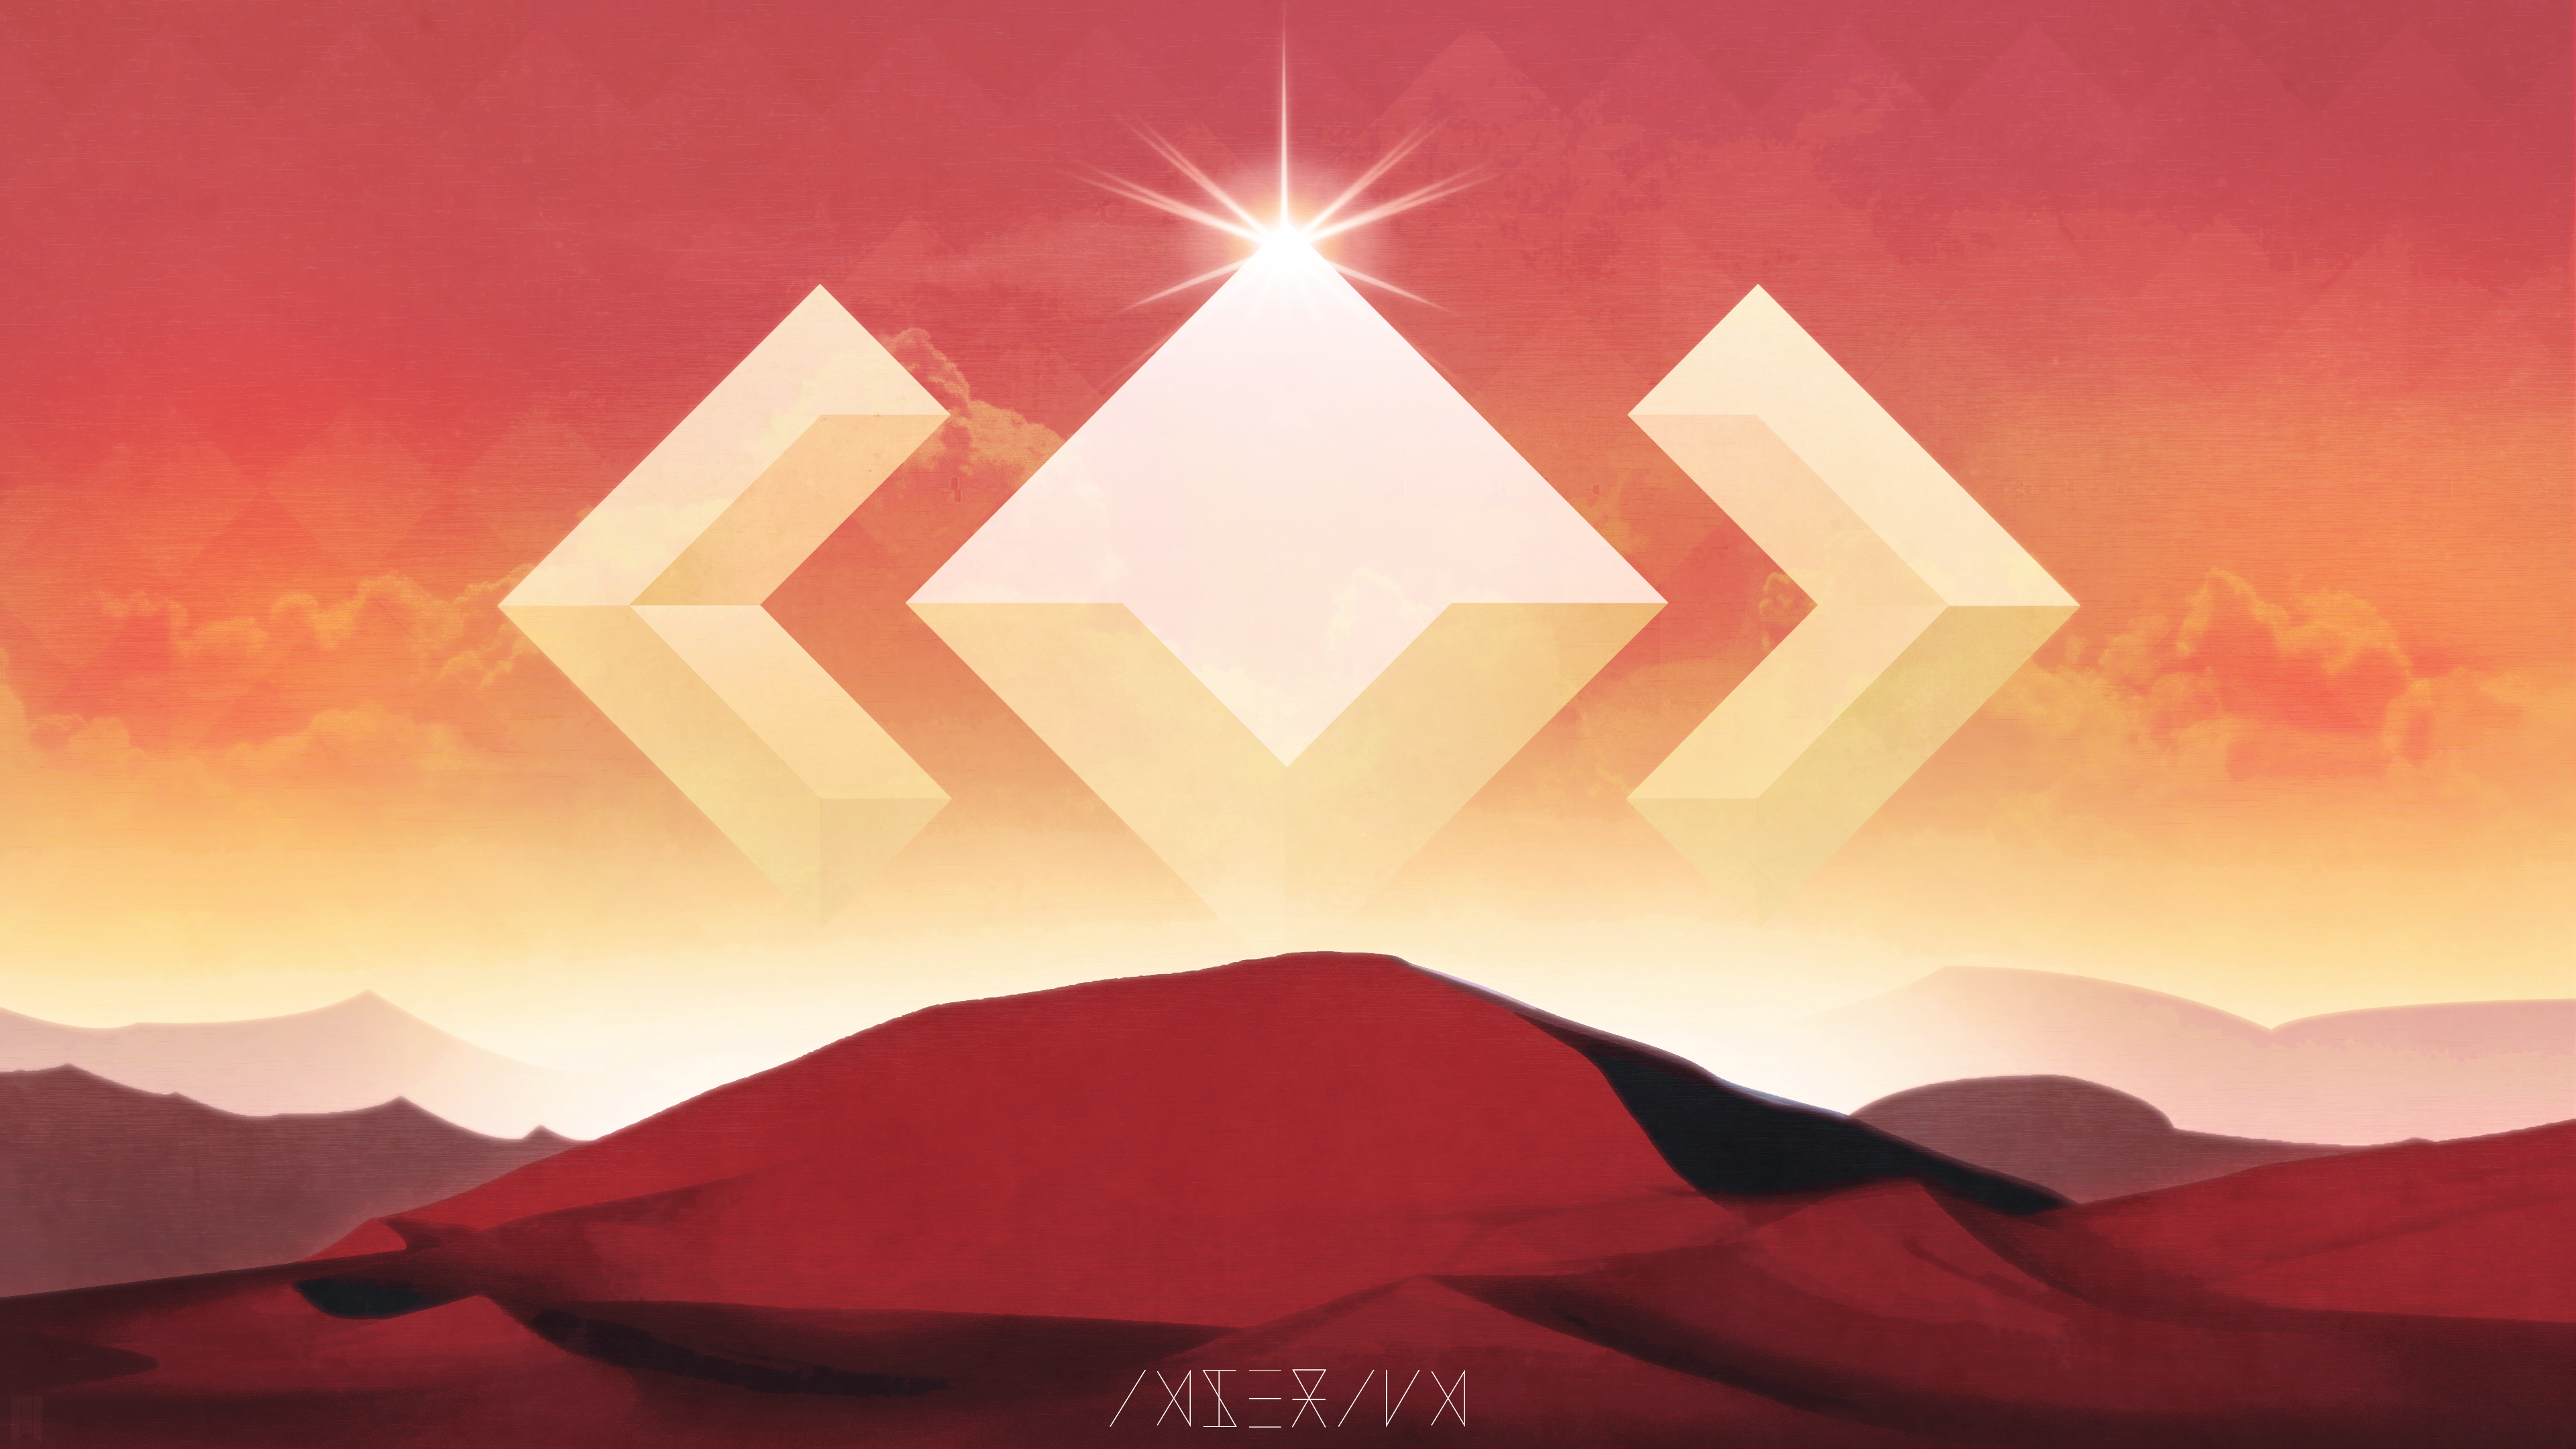 Madeon - Imperium (Remake) by RekaVM on DeviantArt